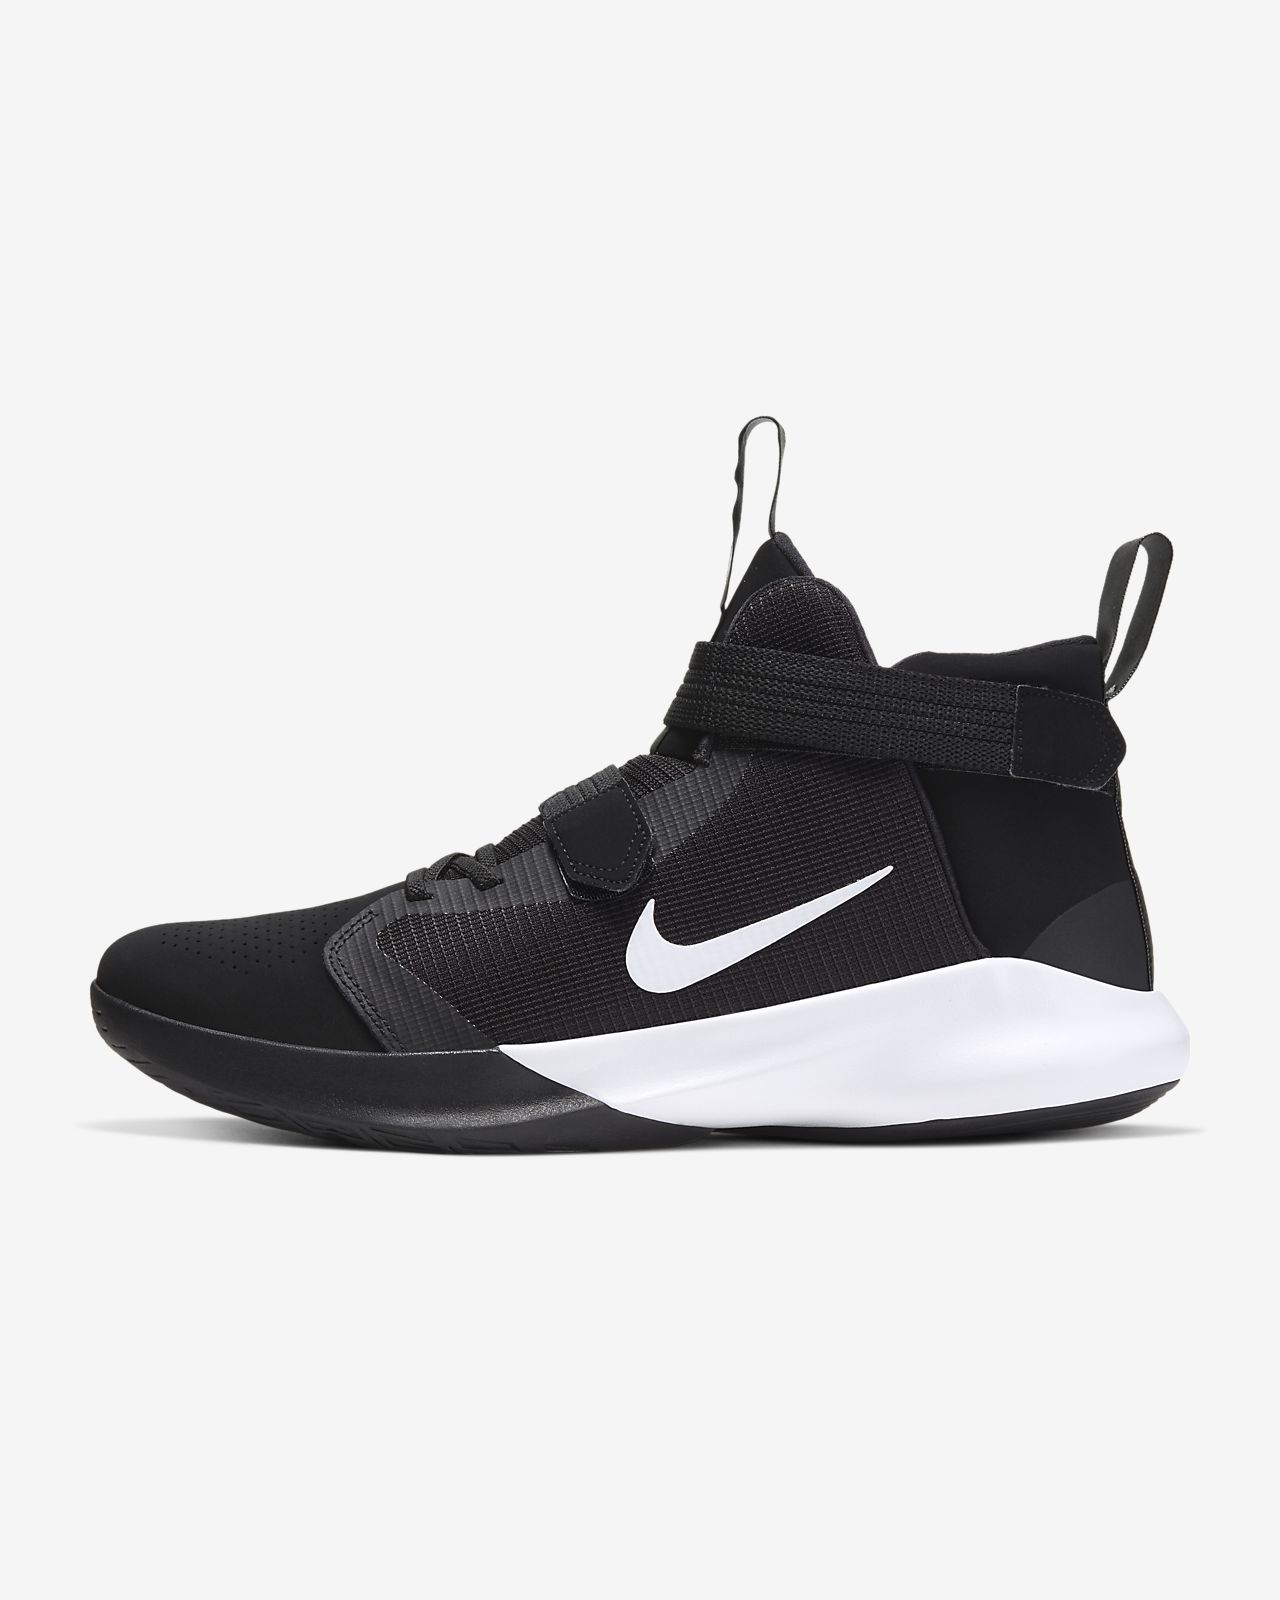 Nike Precision III FlyEase Basketball Shoe